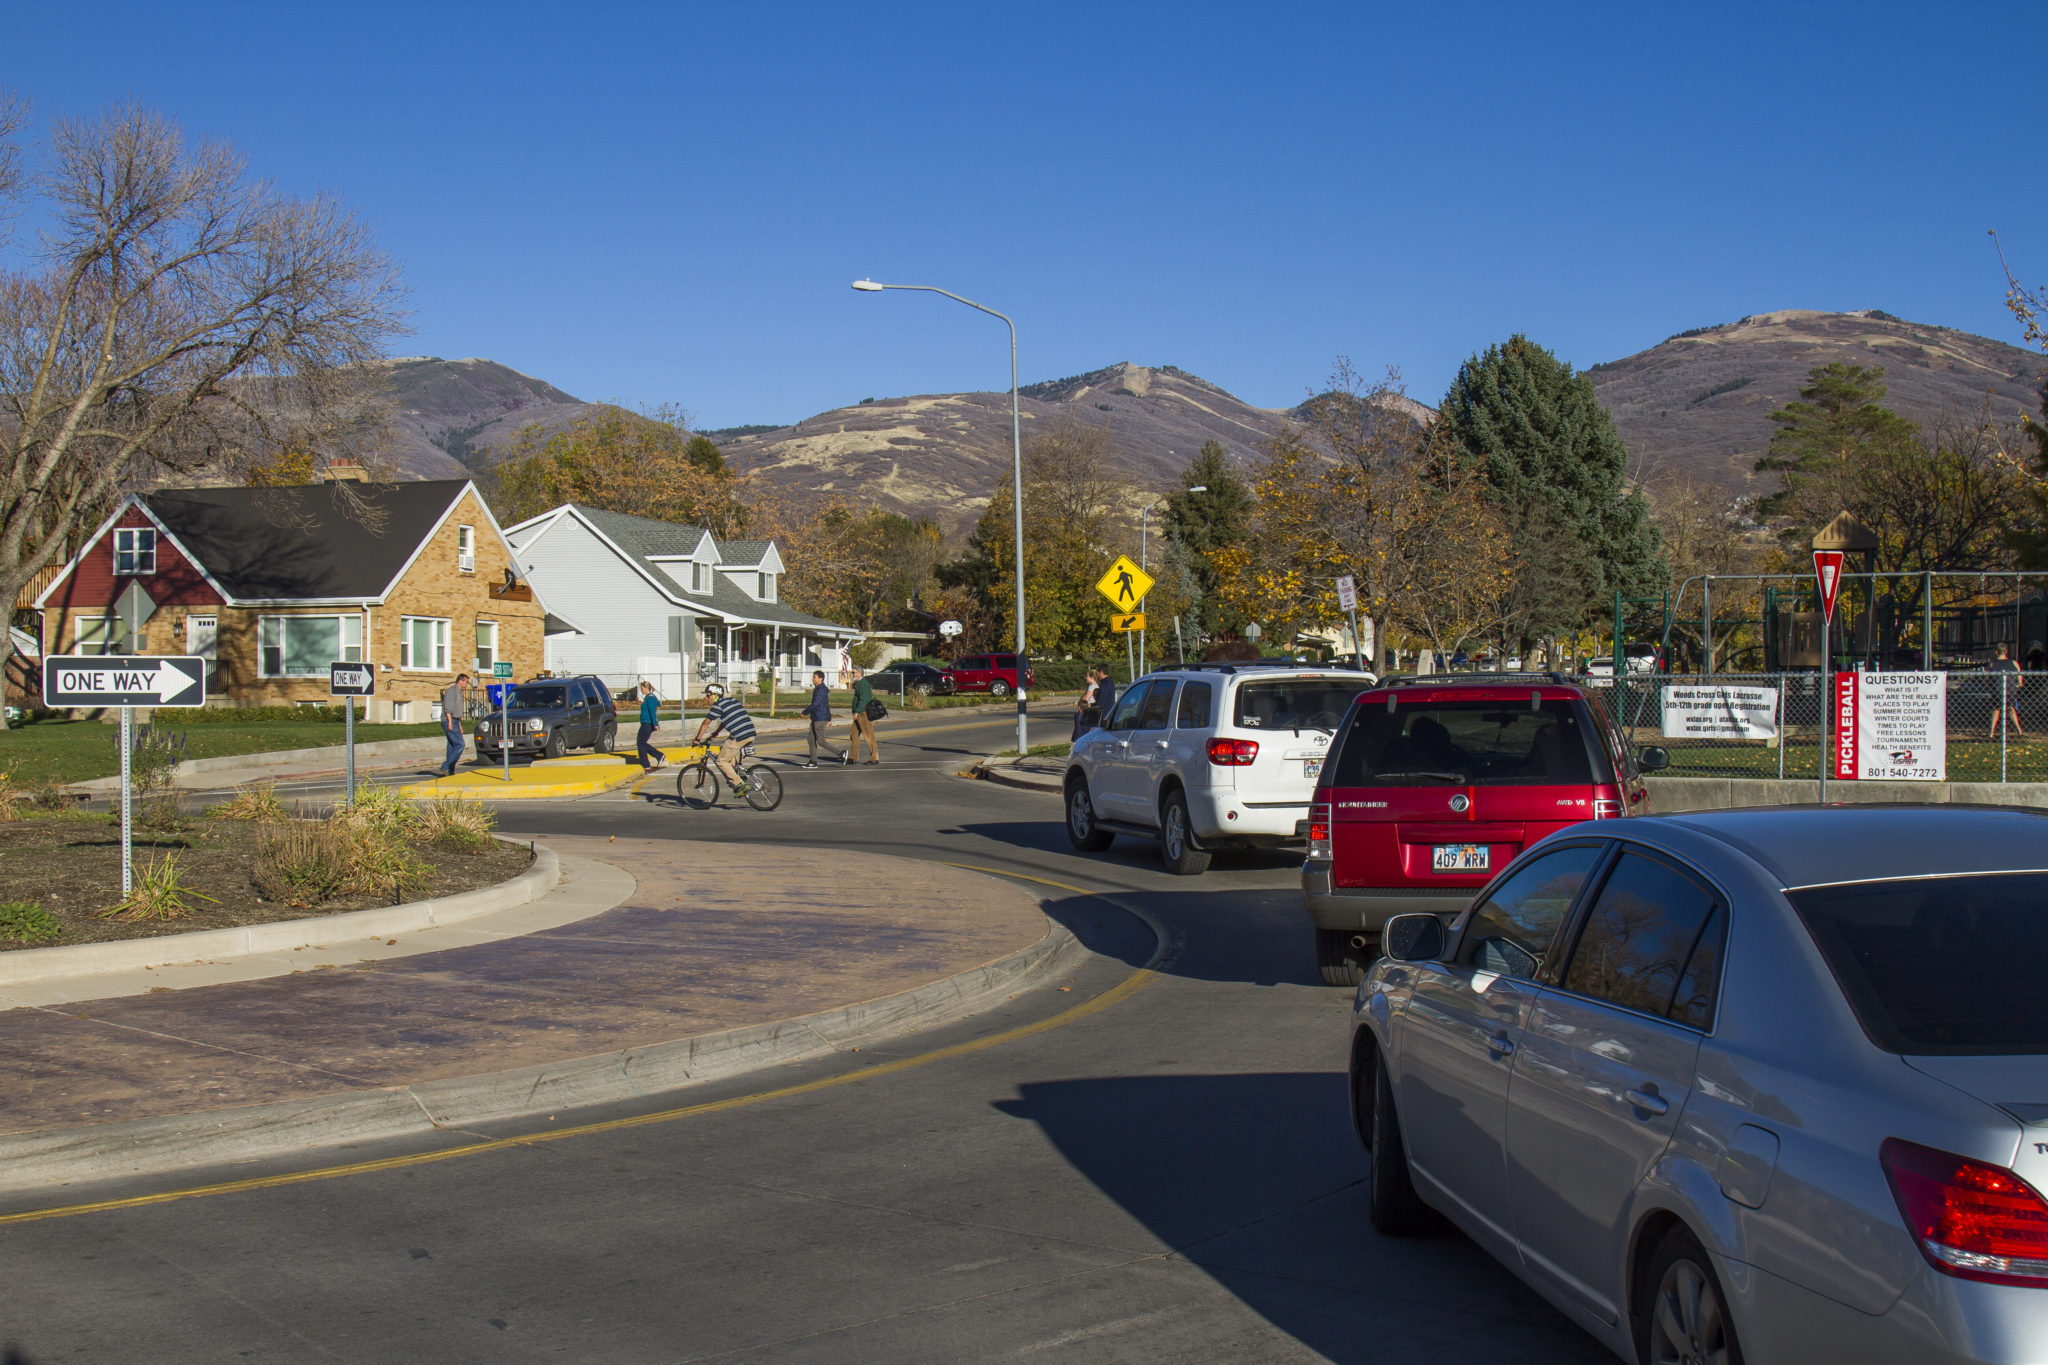 Bicyclist And Autos Utilize Rotary In Bountiful.